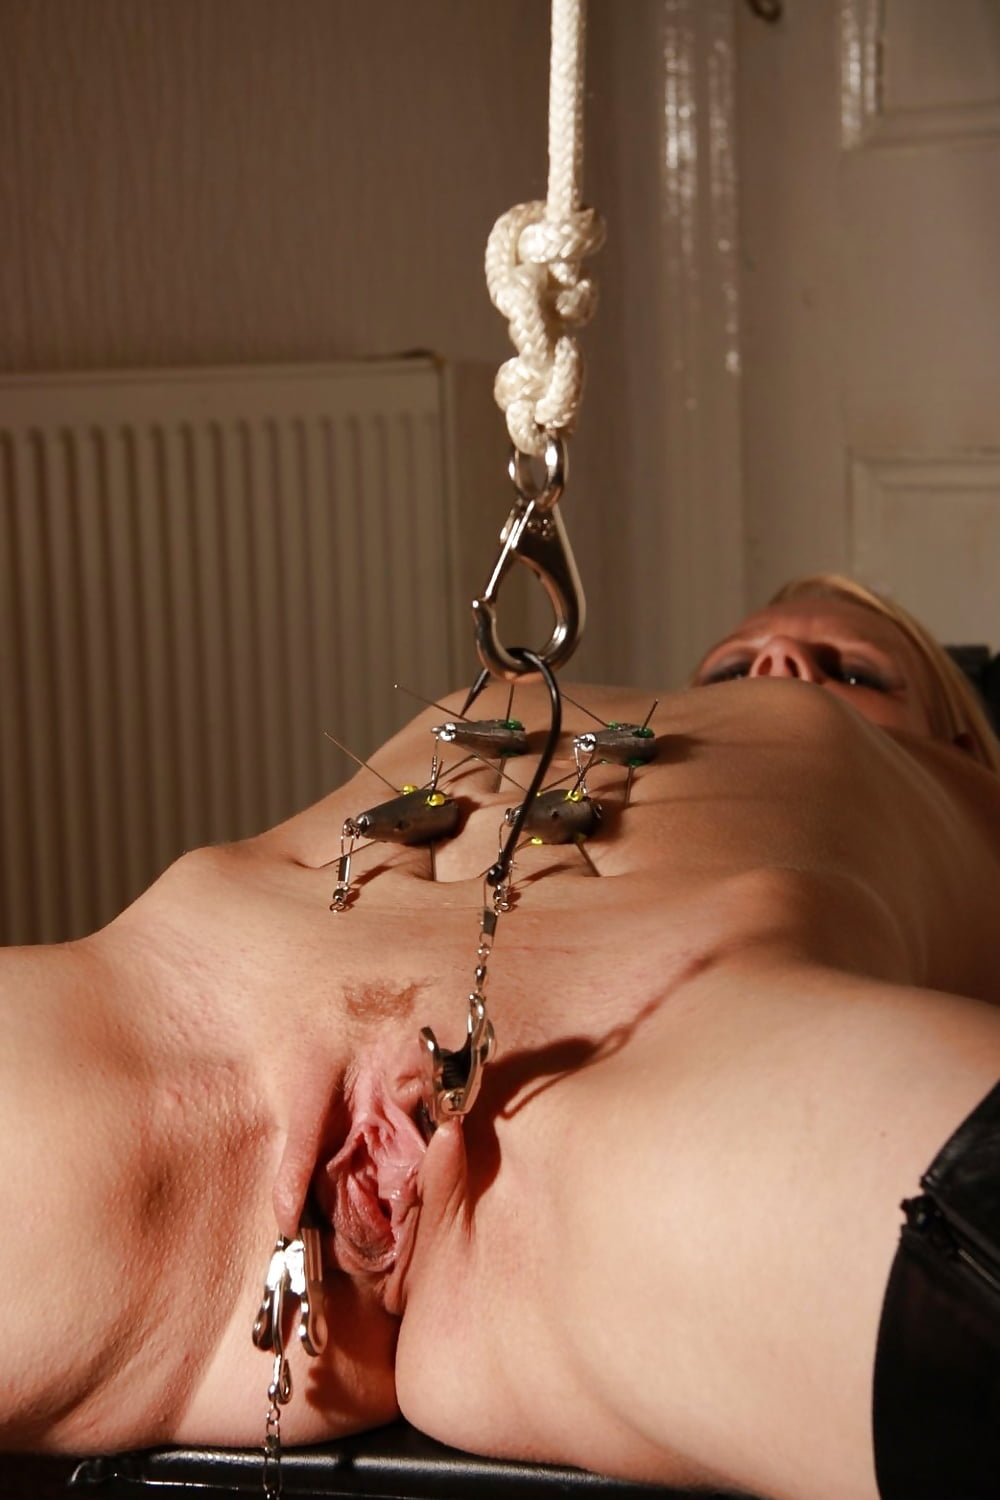 pee-electric-torture-clit-tied